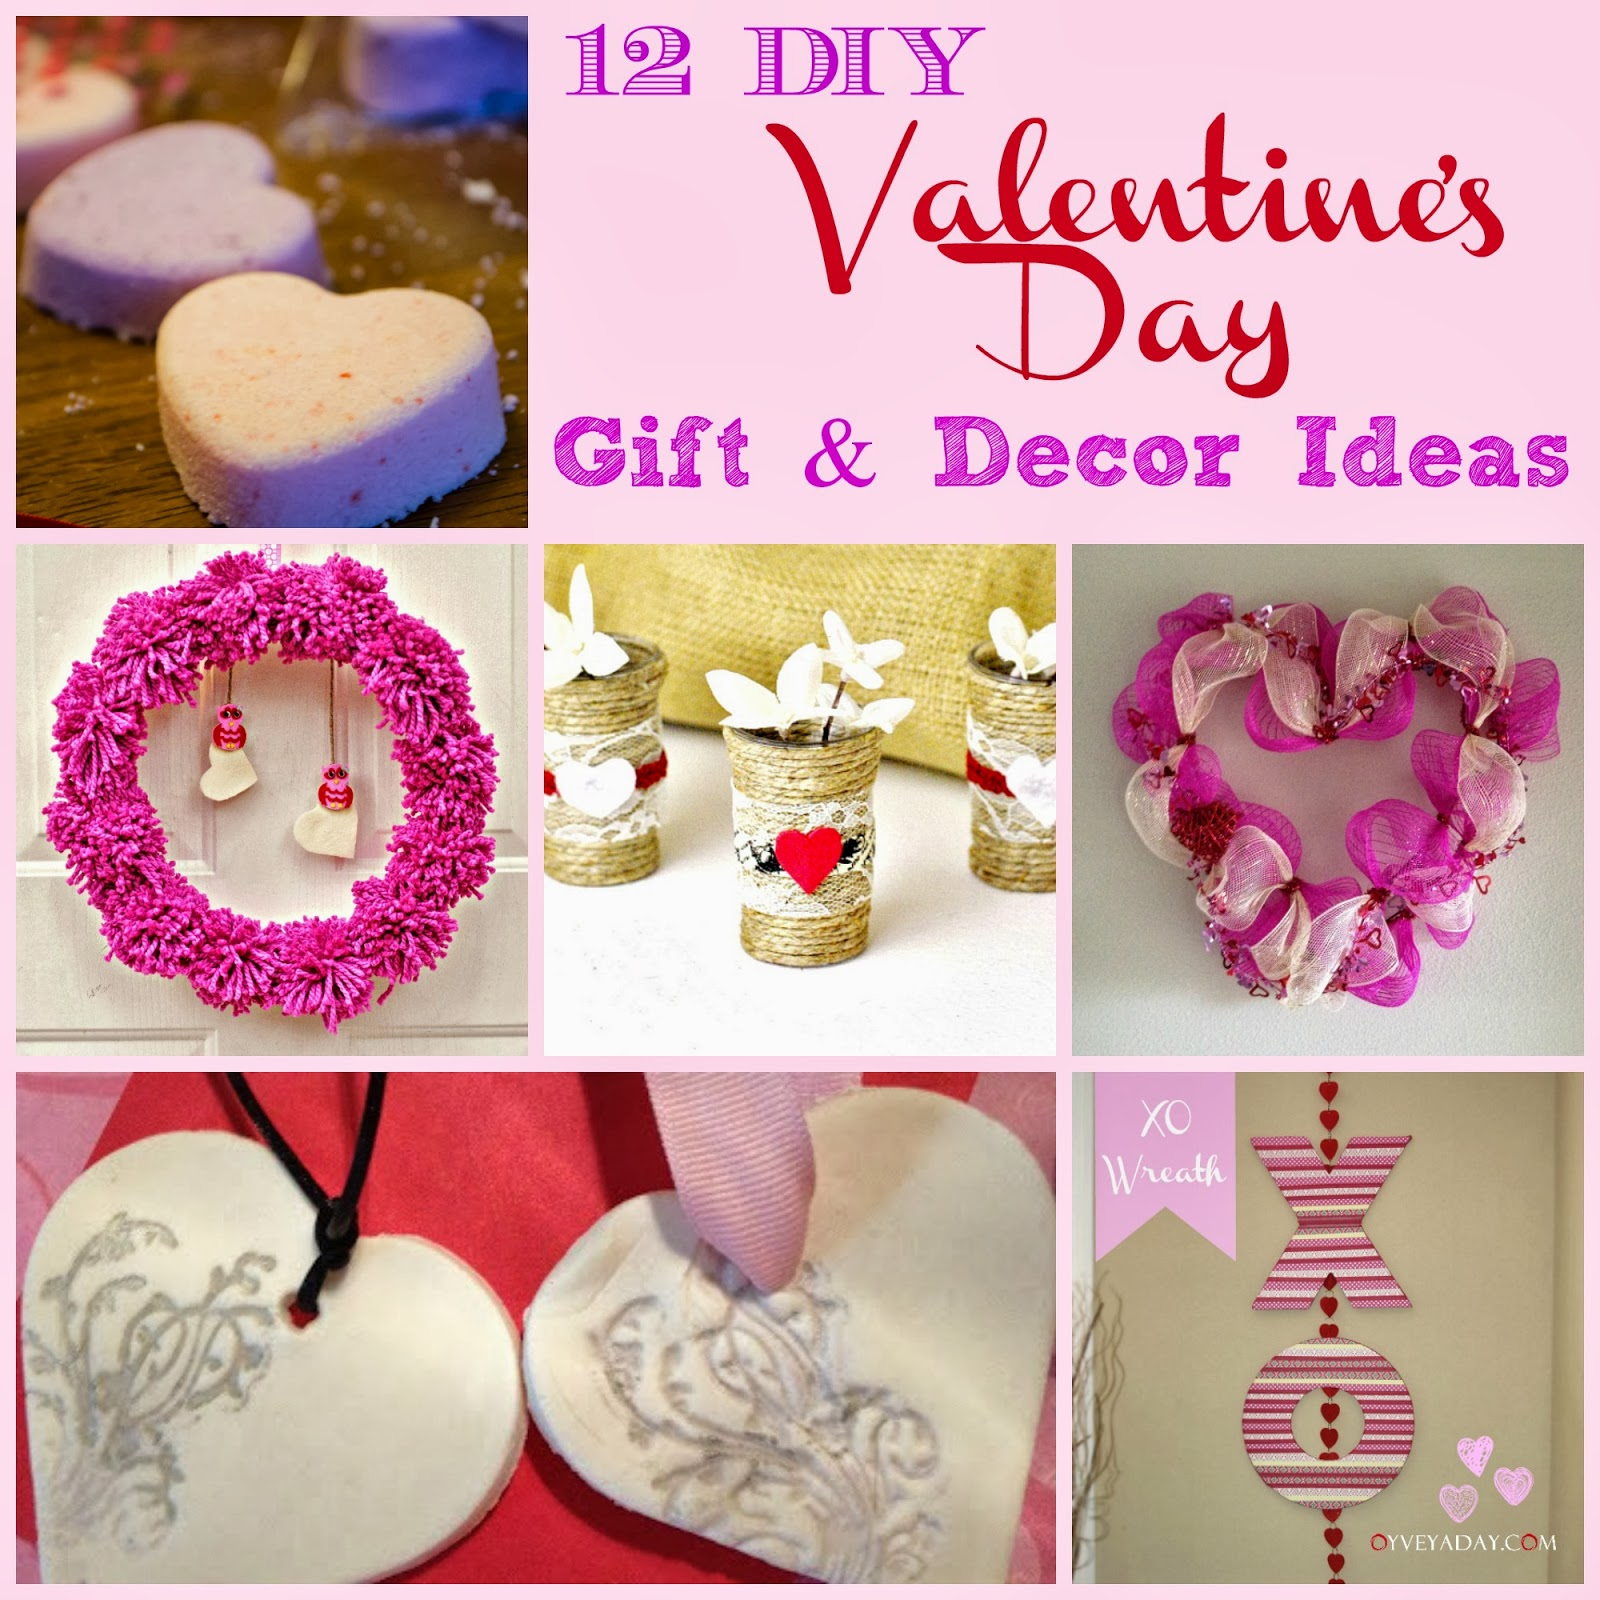 12 DIY Valentine's Day Gift & Decor Ideas